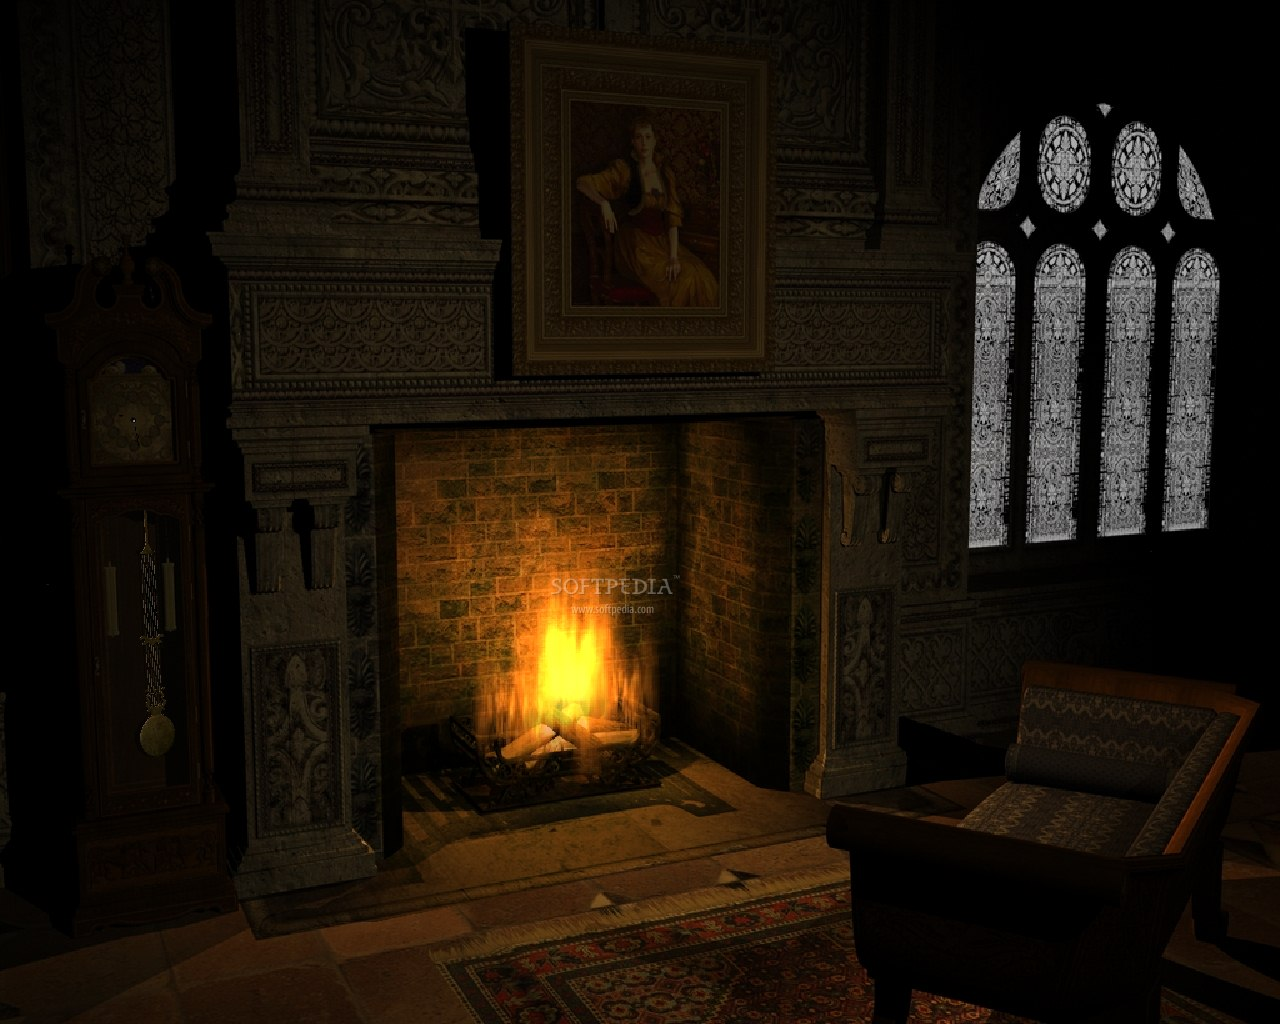 Old Fireplace   Animated Wallpaper   This is the image that will be 1280x1024